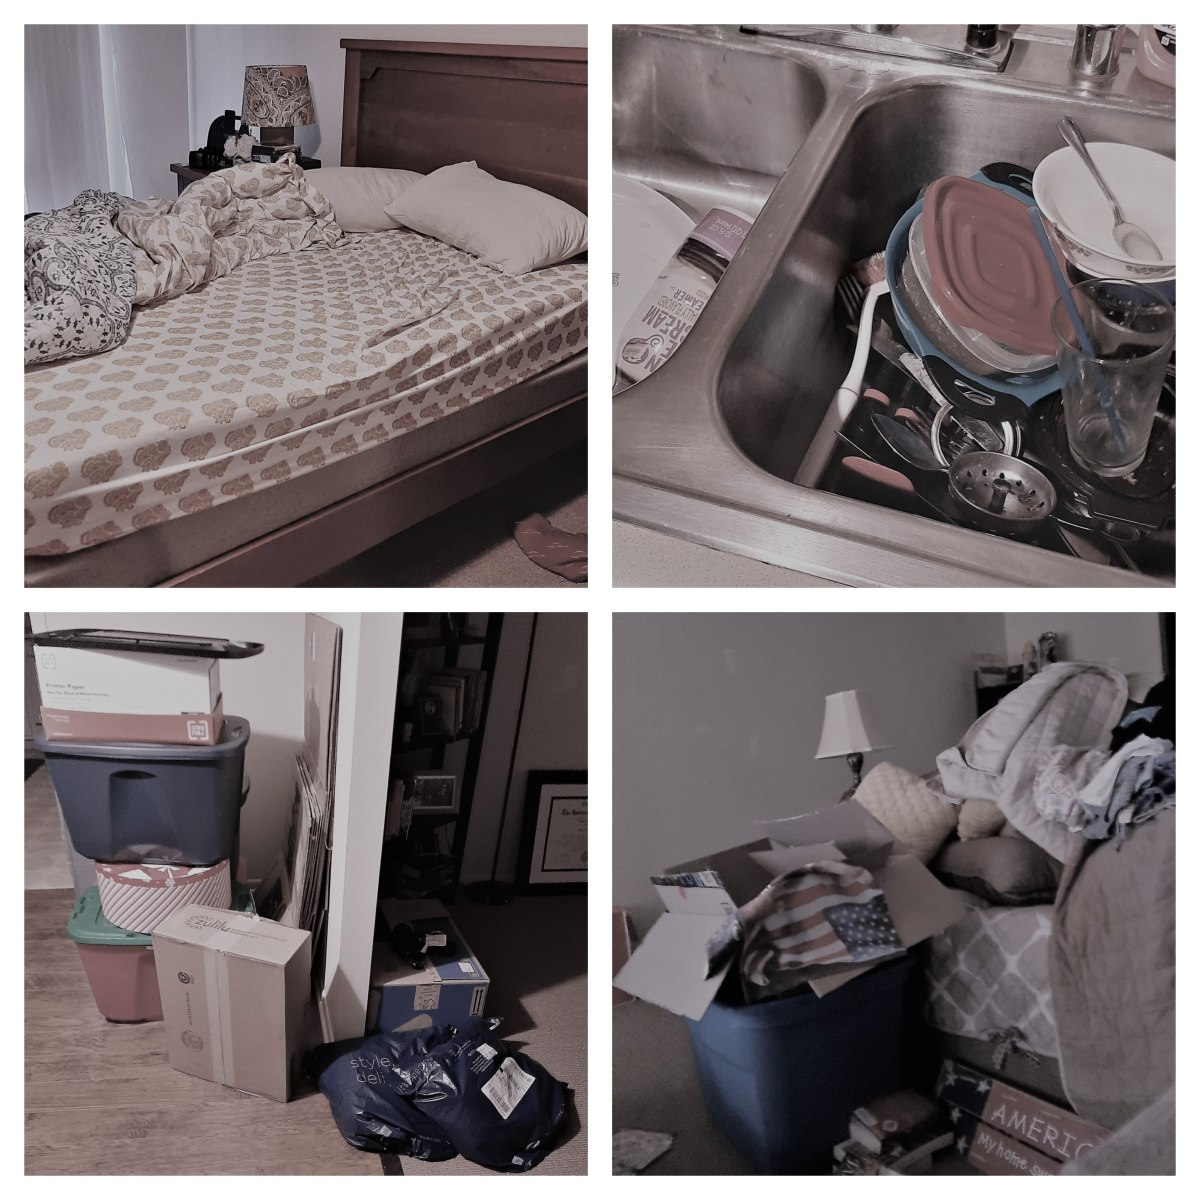 This is only a small part of my mess. I feel horrible about not being able to keep a cleaner home. I know people think I am just lazy, but sometimes, it is just too much.